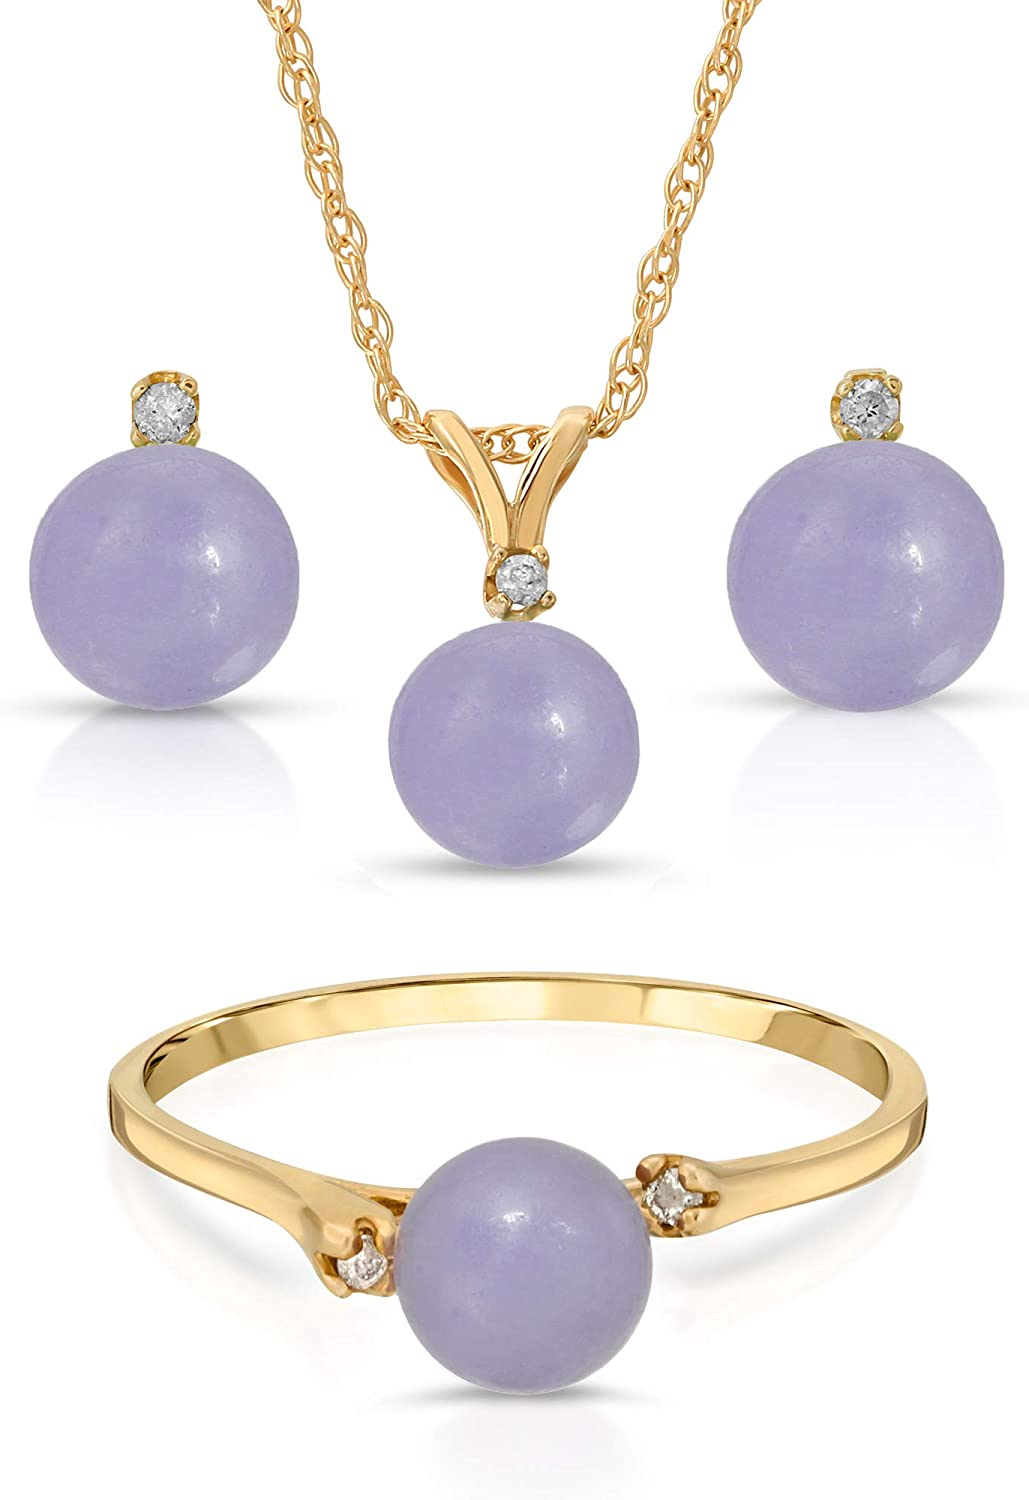 Regalia by Ulti Ramos 14K Yellow Gold Real Jade in Lavender Color 3pc Set with .05cts of White Diamond